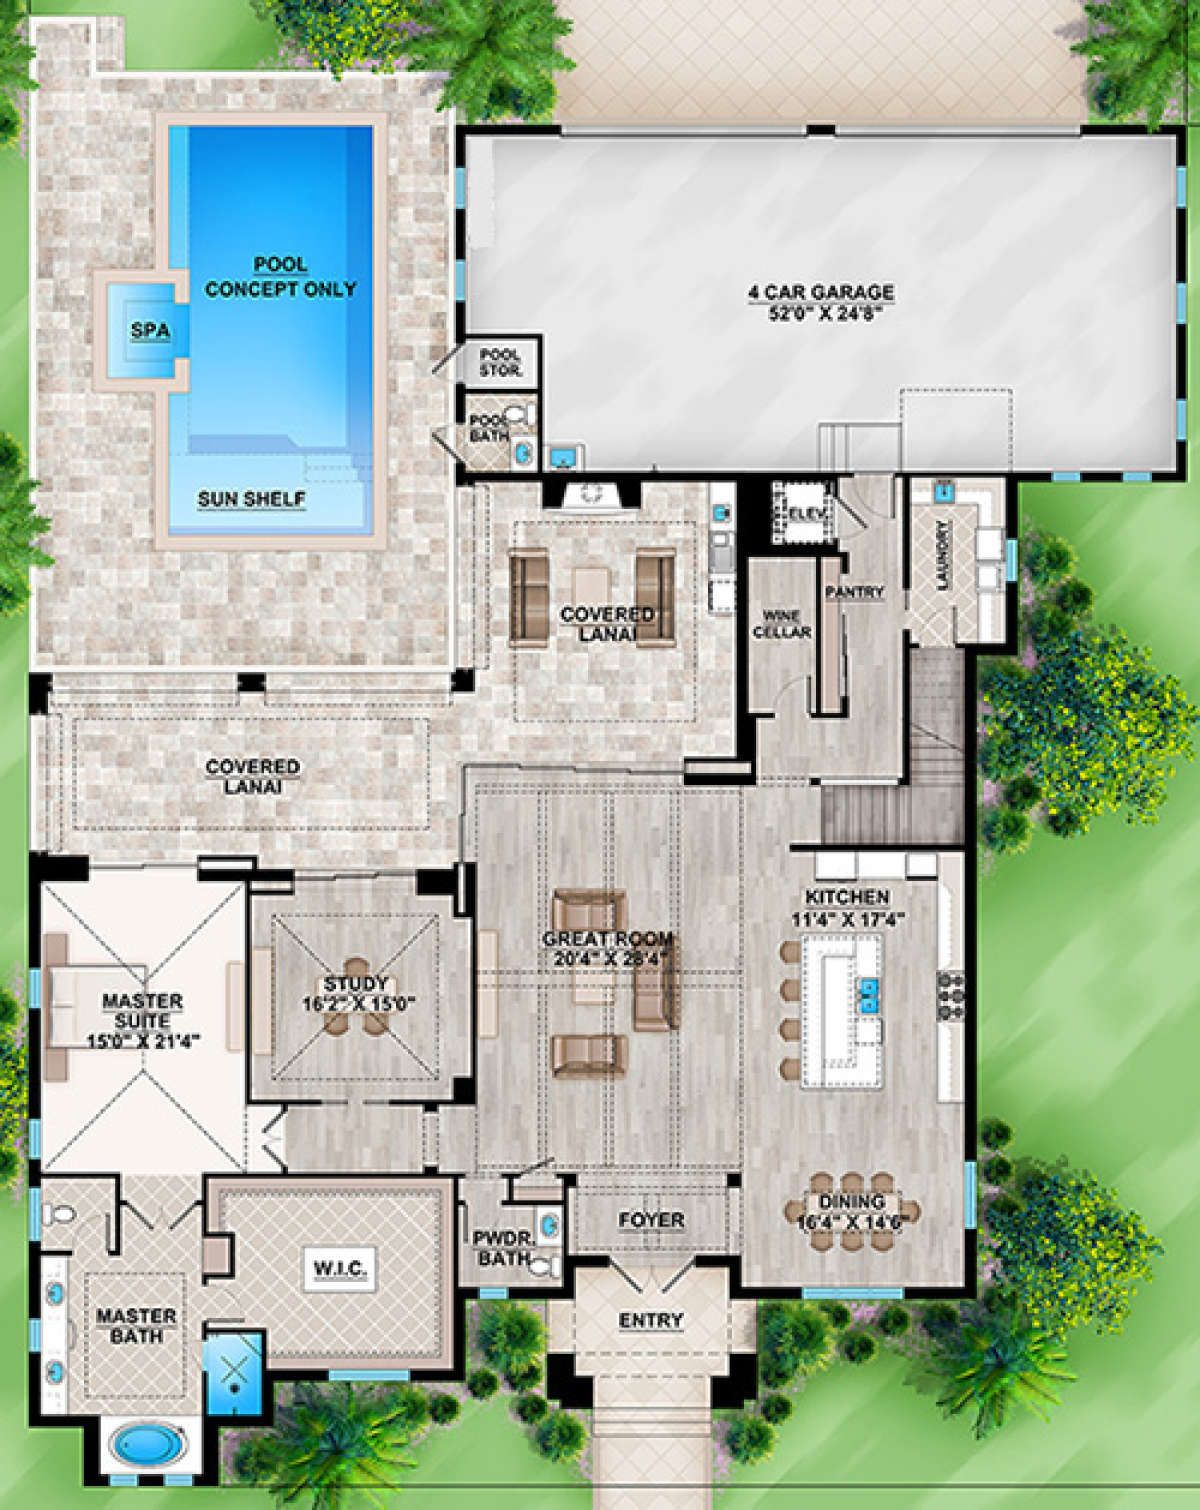 House Plan 207 00041 Contemporary Plan 4 485 Square Feet 4 Bedrooms 5 Bathrooms Sims House Plans Mediterranean Style House Plans House Layout Plans